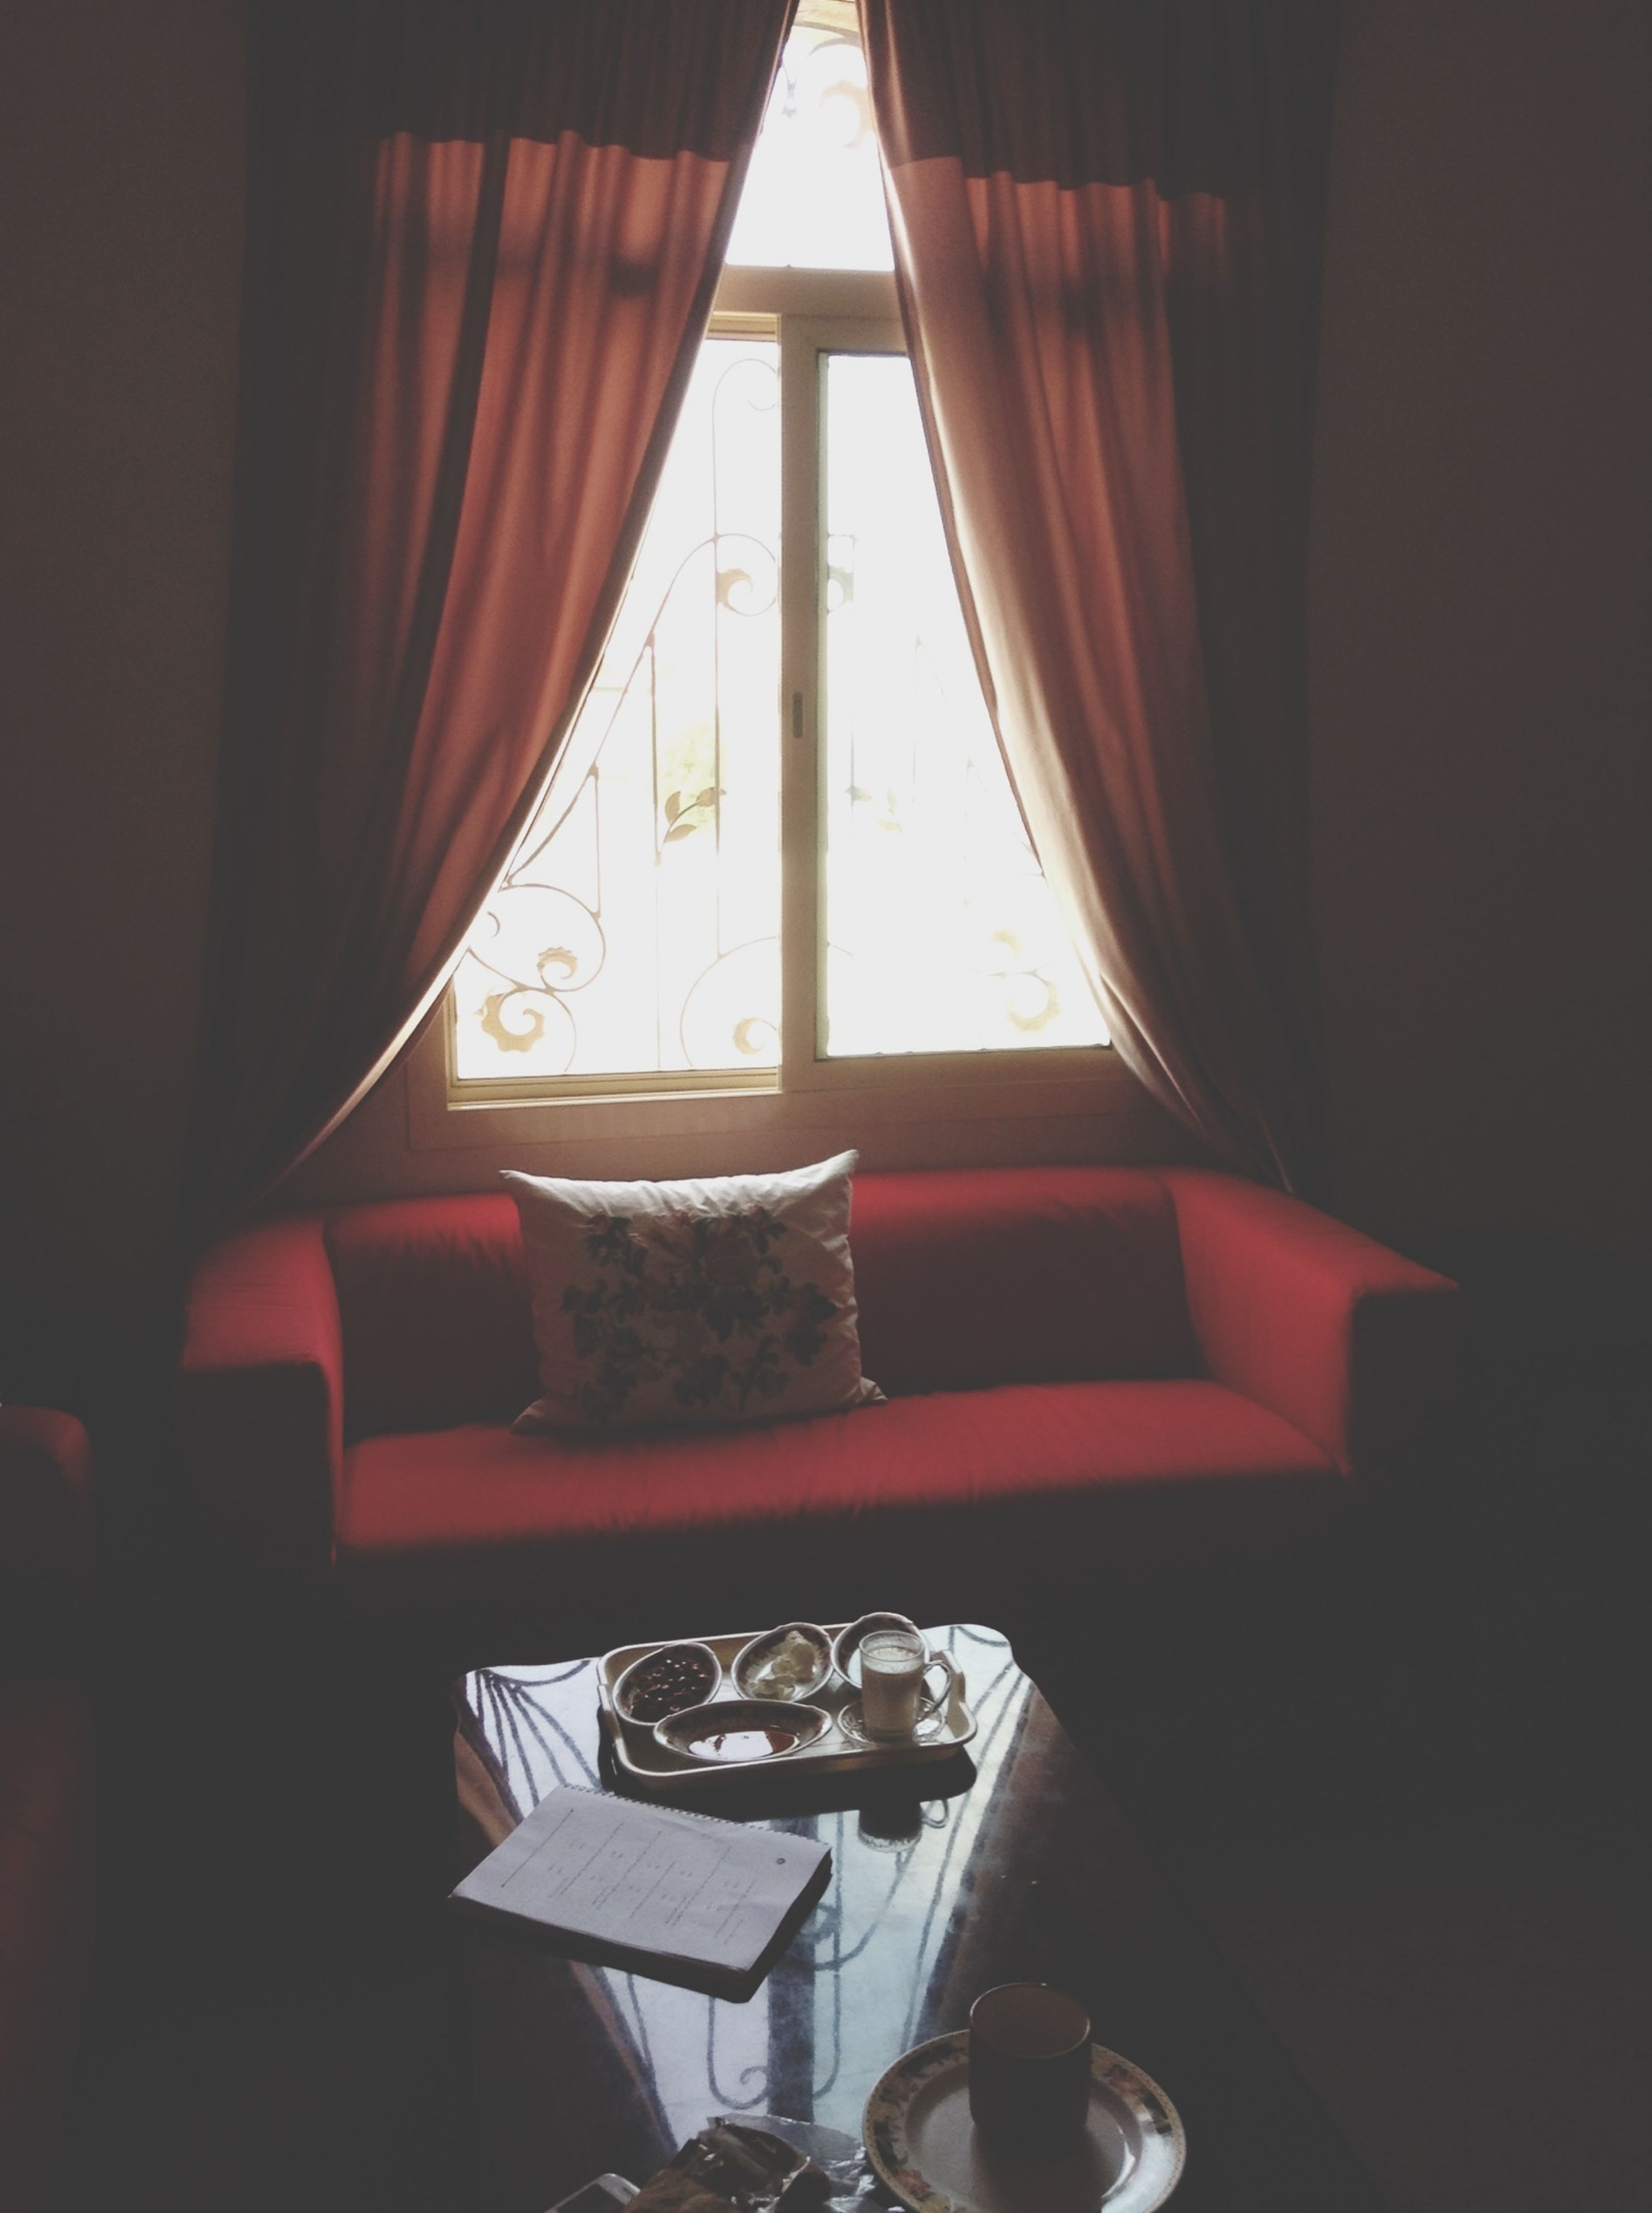 indoors, window, glass - material, transparent, home interior, table, curtain, chair, hanging, absence, glass, built structure, no people, day, electric lamp, interior, house, empty, reflection, sunlight